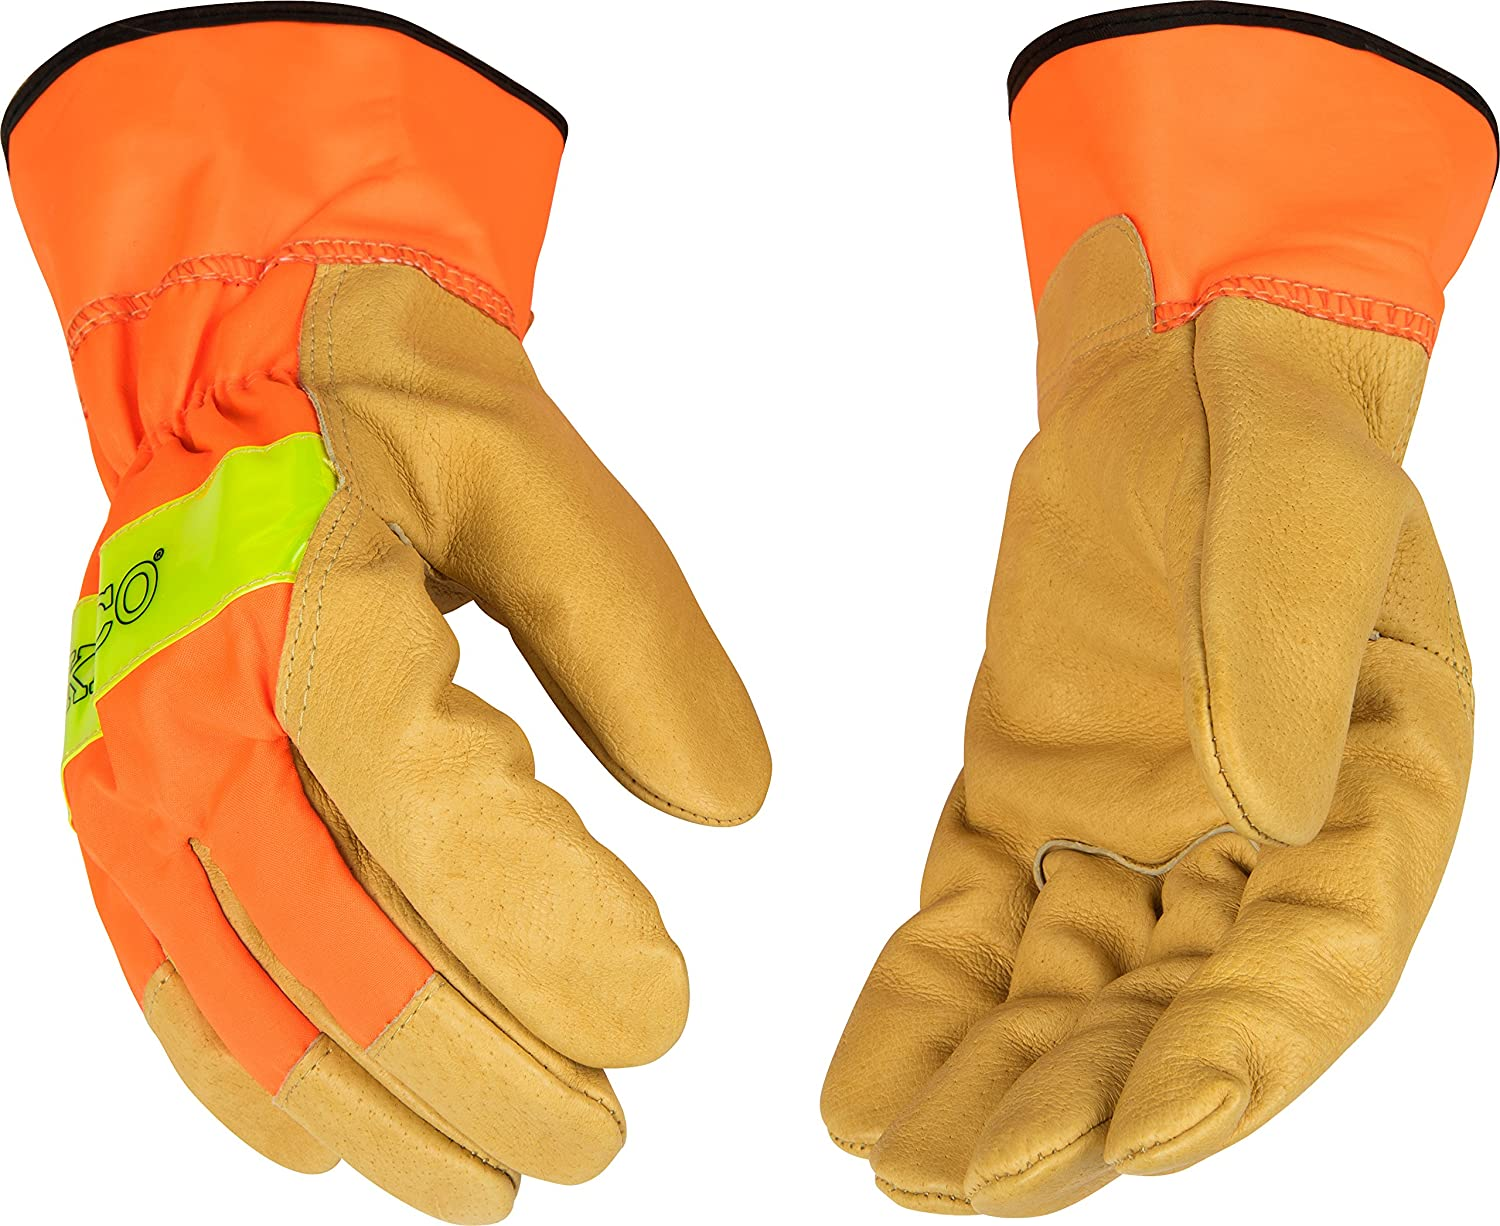 Kinco 1918 Unlined Grain Pigskin Leather High Visibility Glove with Orange Back, Work, Large, Palomino (Pack of 6 Pairs) by KINCO INTERNATIONAL B00AN7W4WC